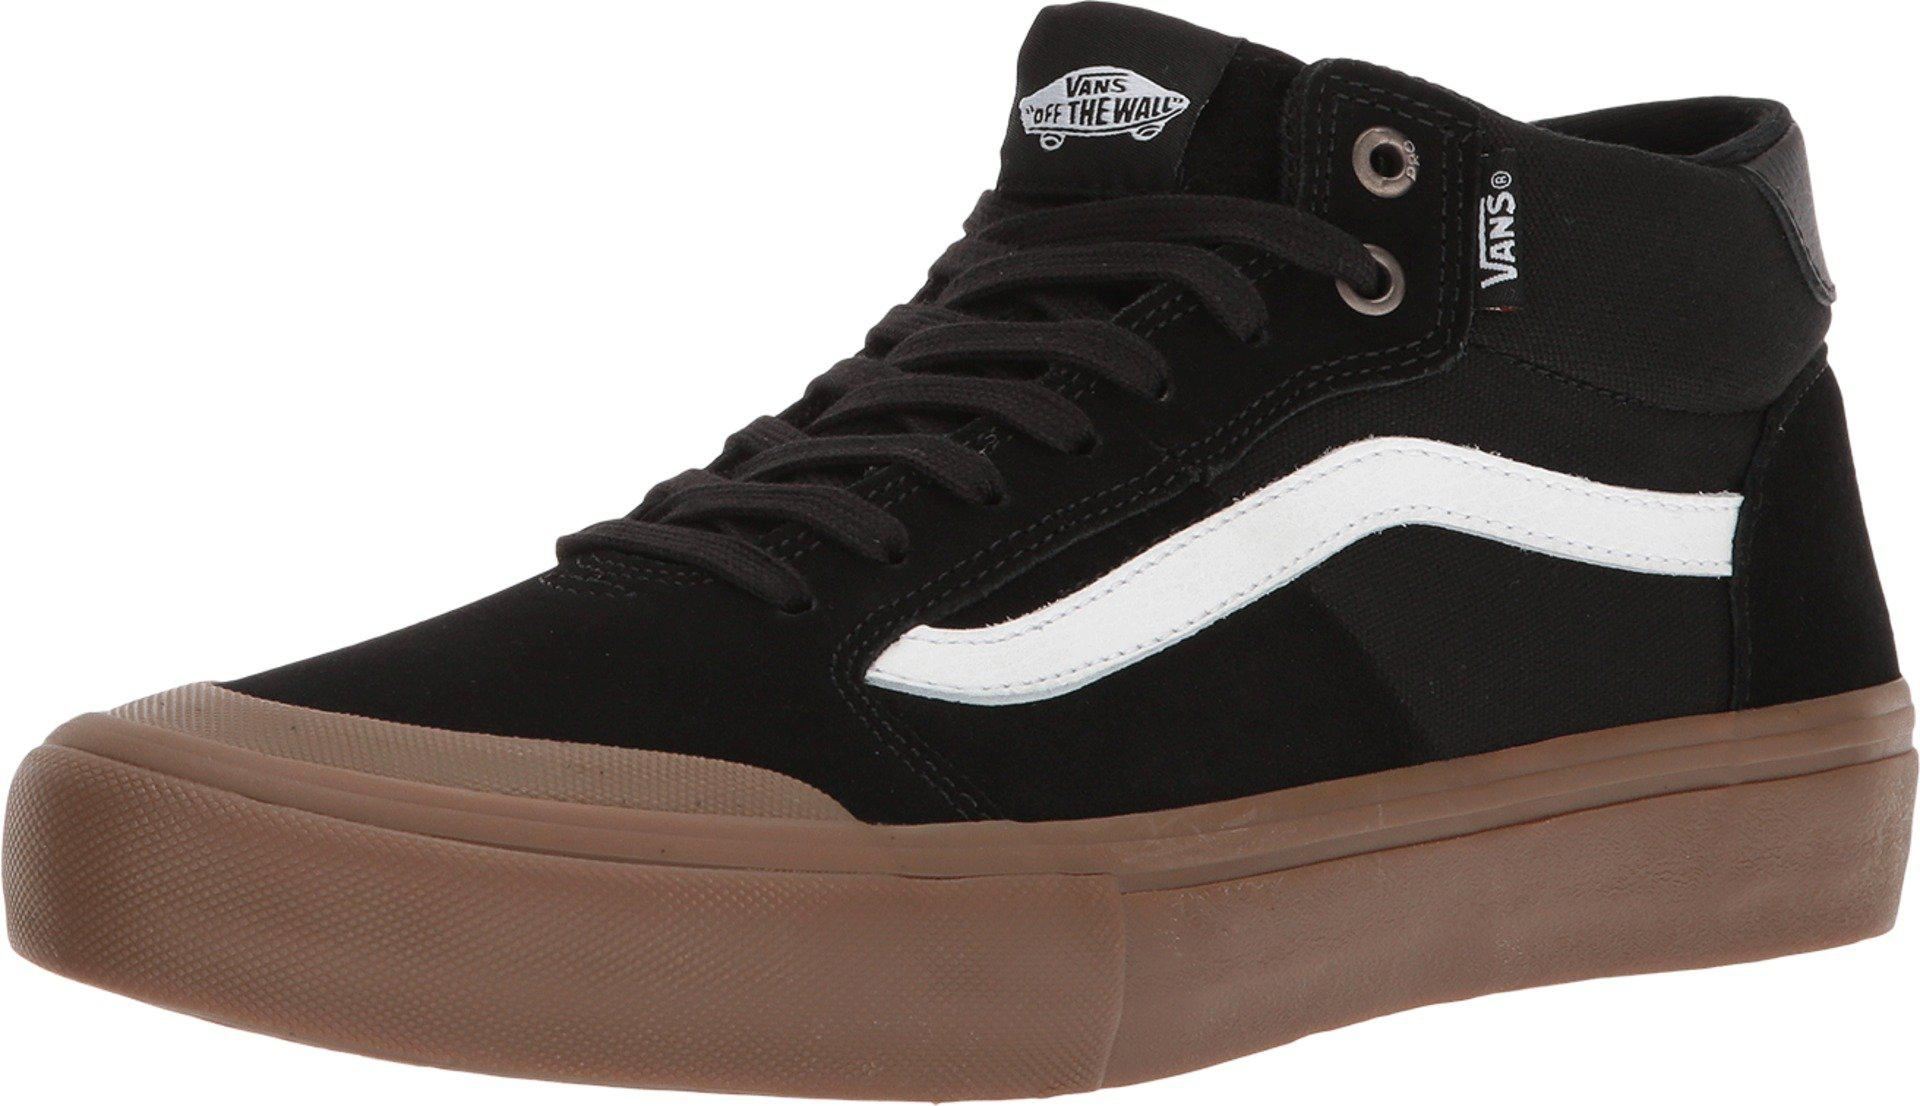 Lyst - Vans Style 112 Mid Pro in Black for Men 933c7f777